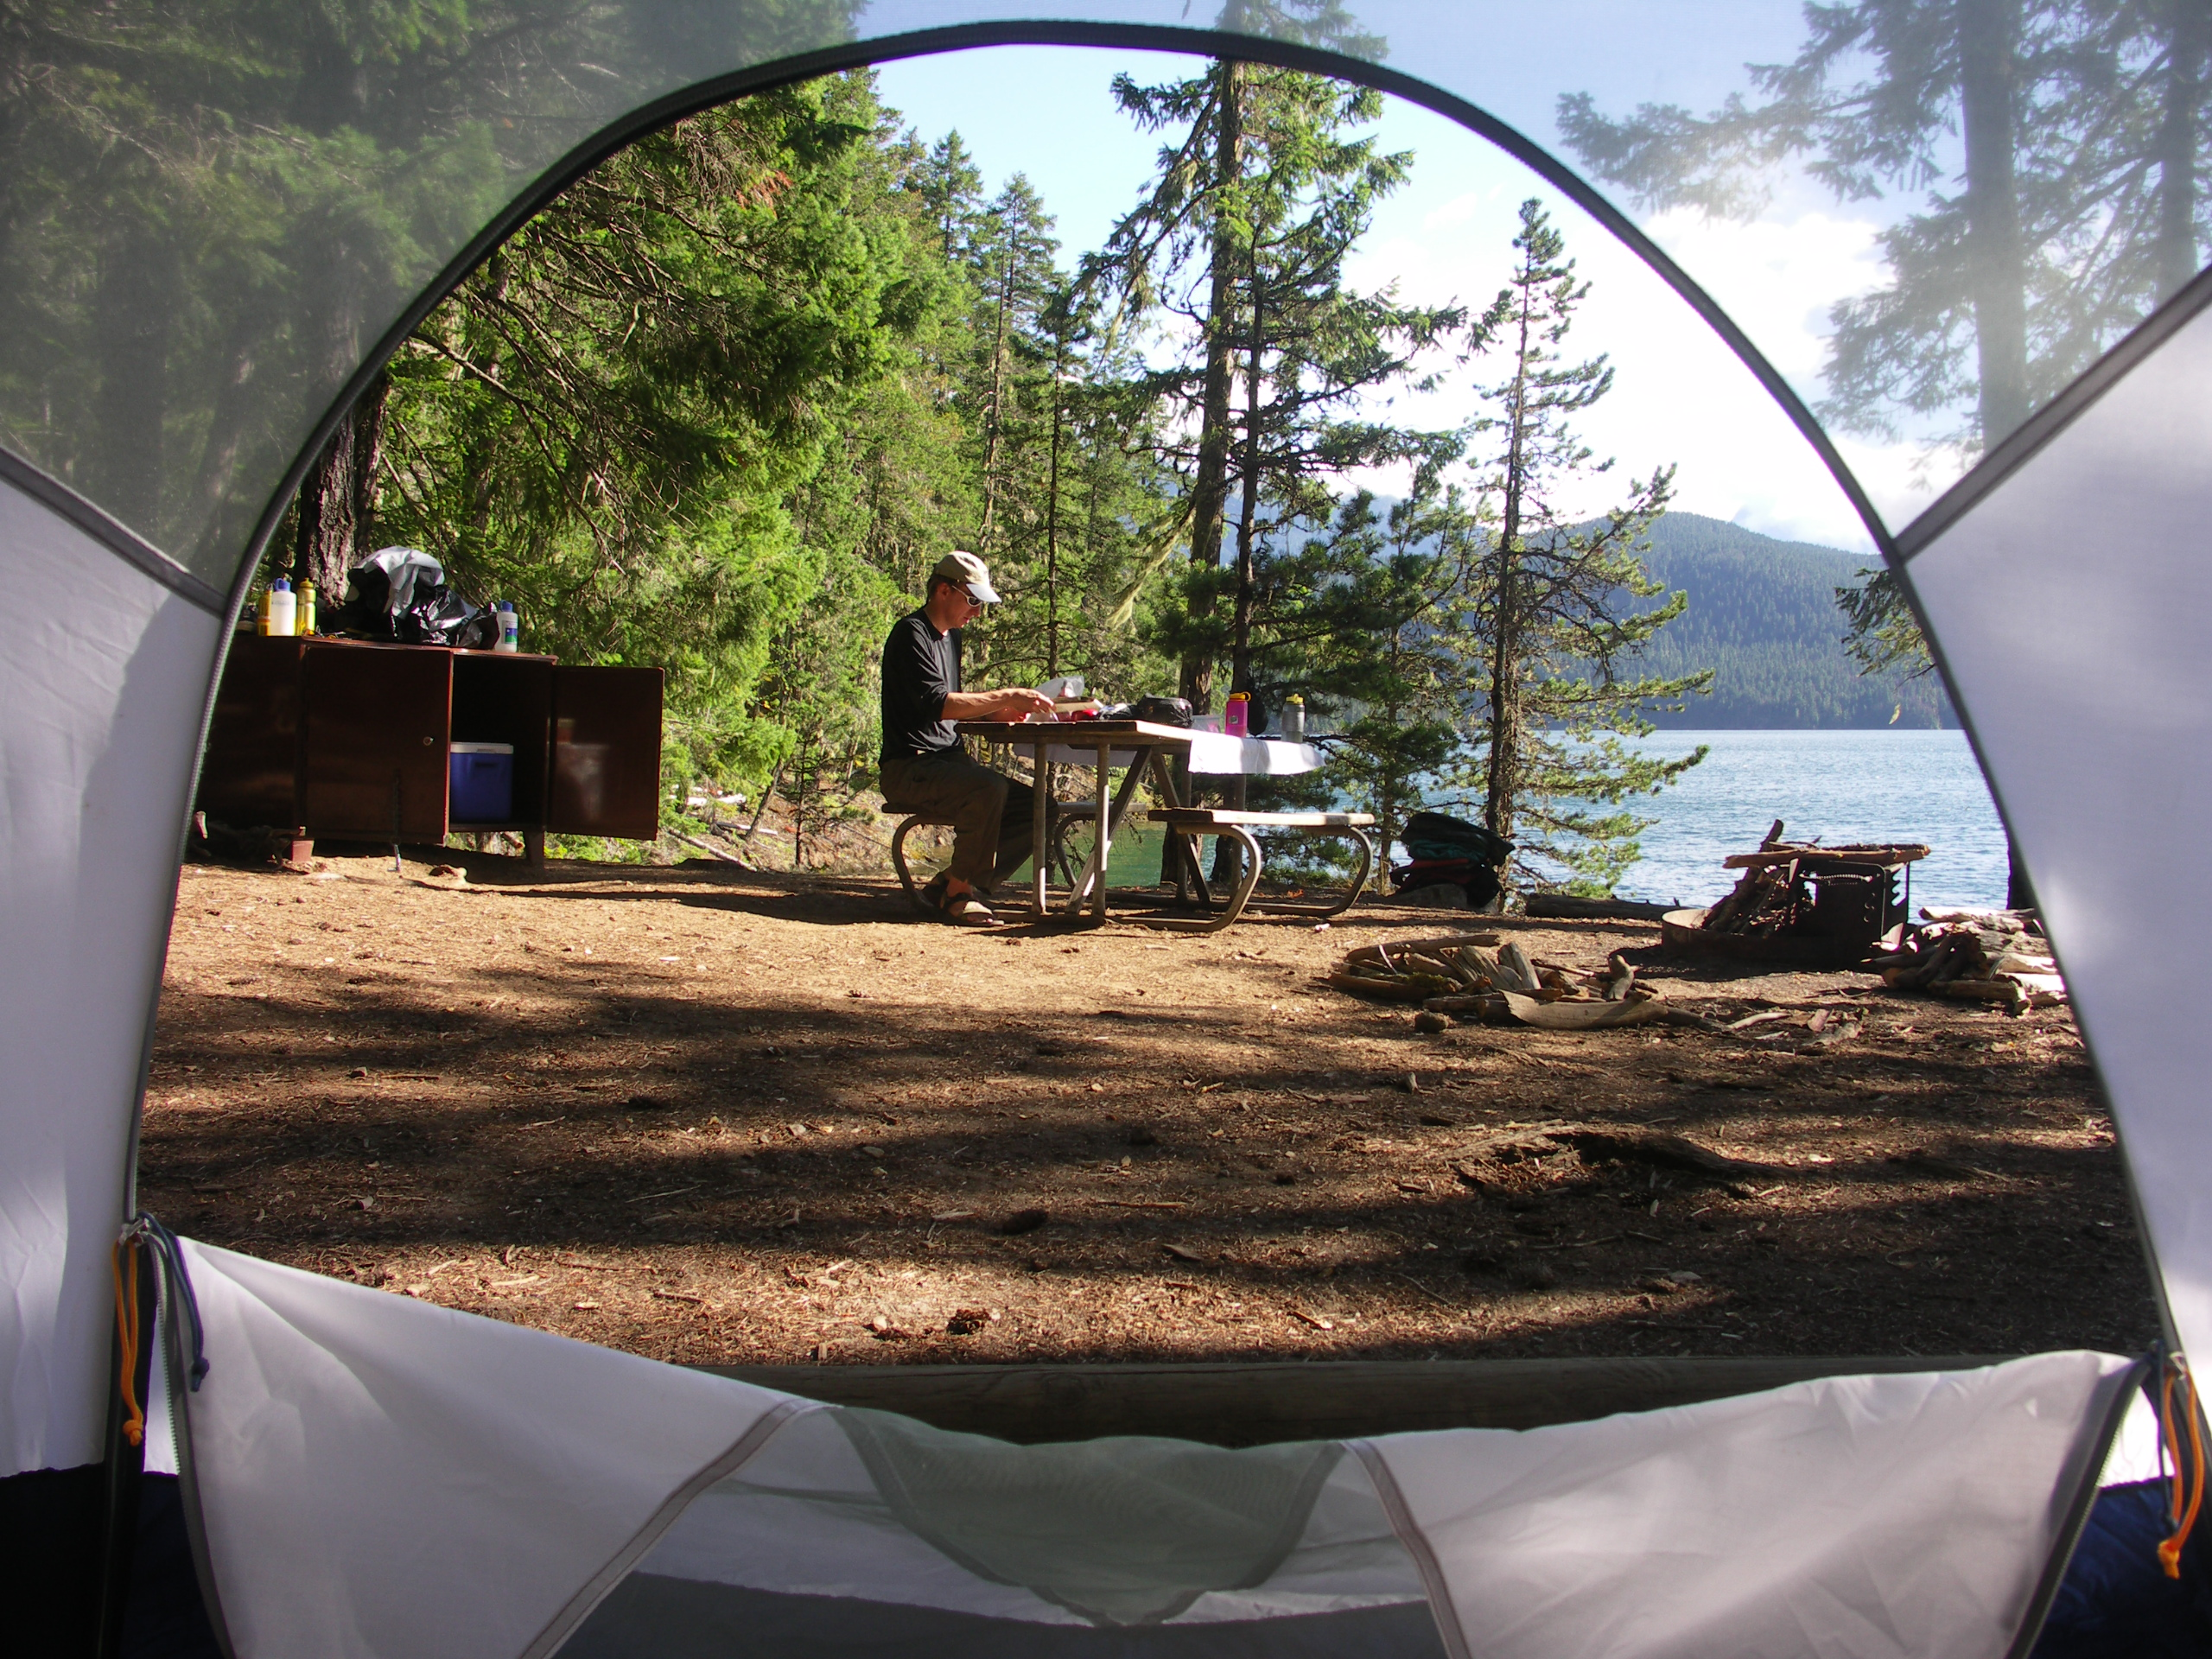 View from tent to picnic table